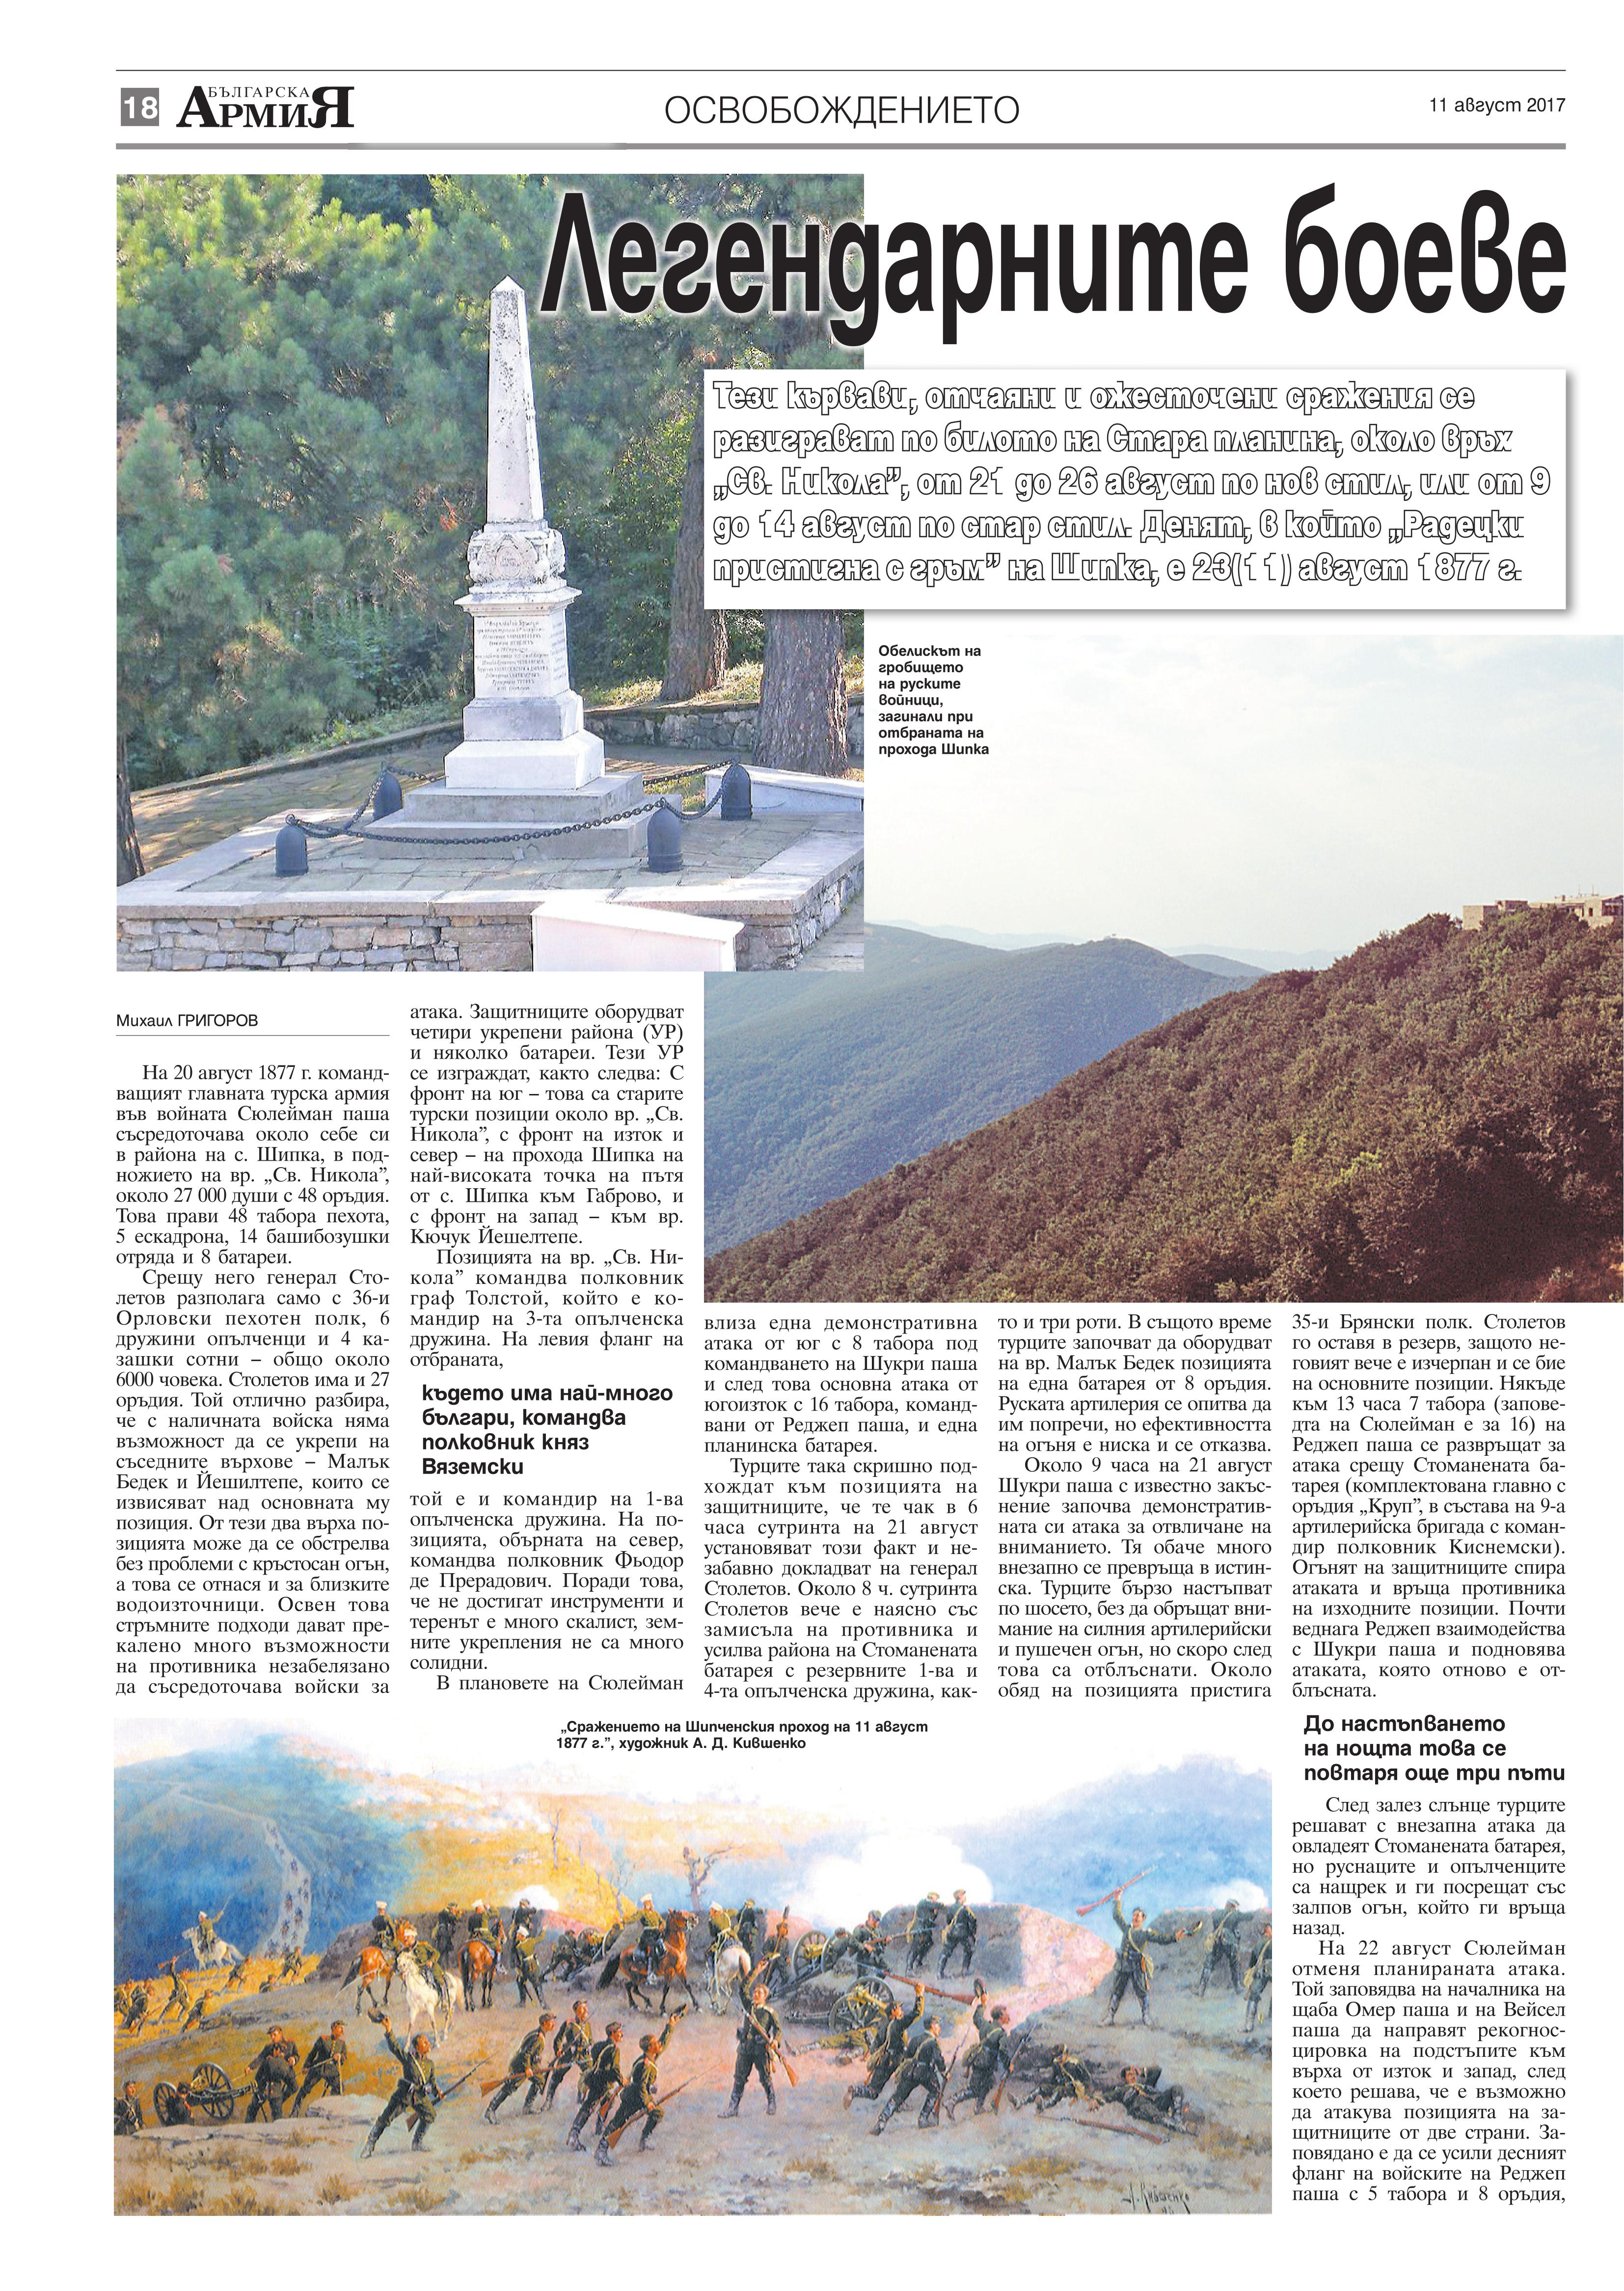 http://armymedia.bg/wp-content/uploads/2015/06/18.page1_-28.jpg